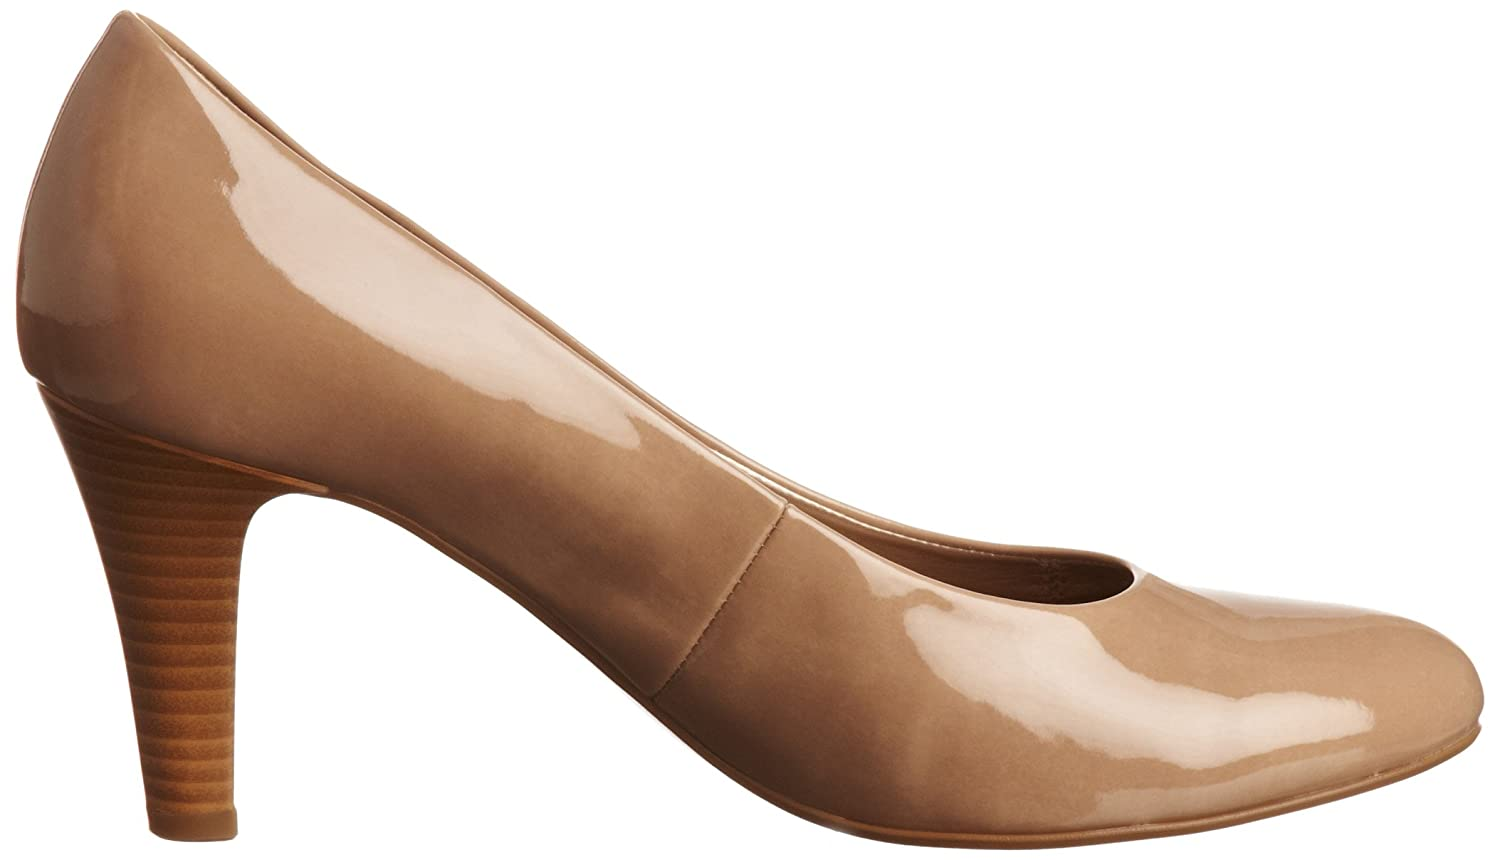 Gabor 65.210.74 65.210.74 65.210.74 Damen Pumps Beige 34a005